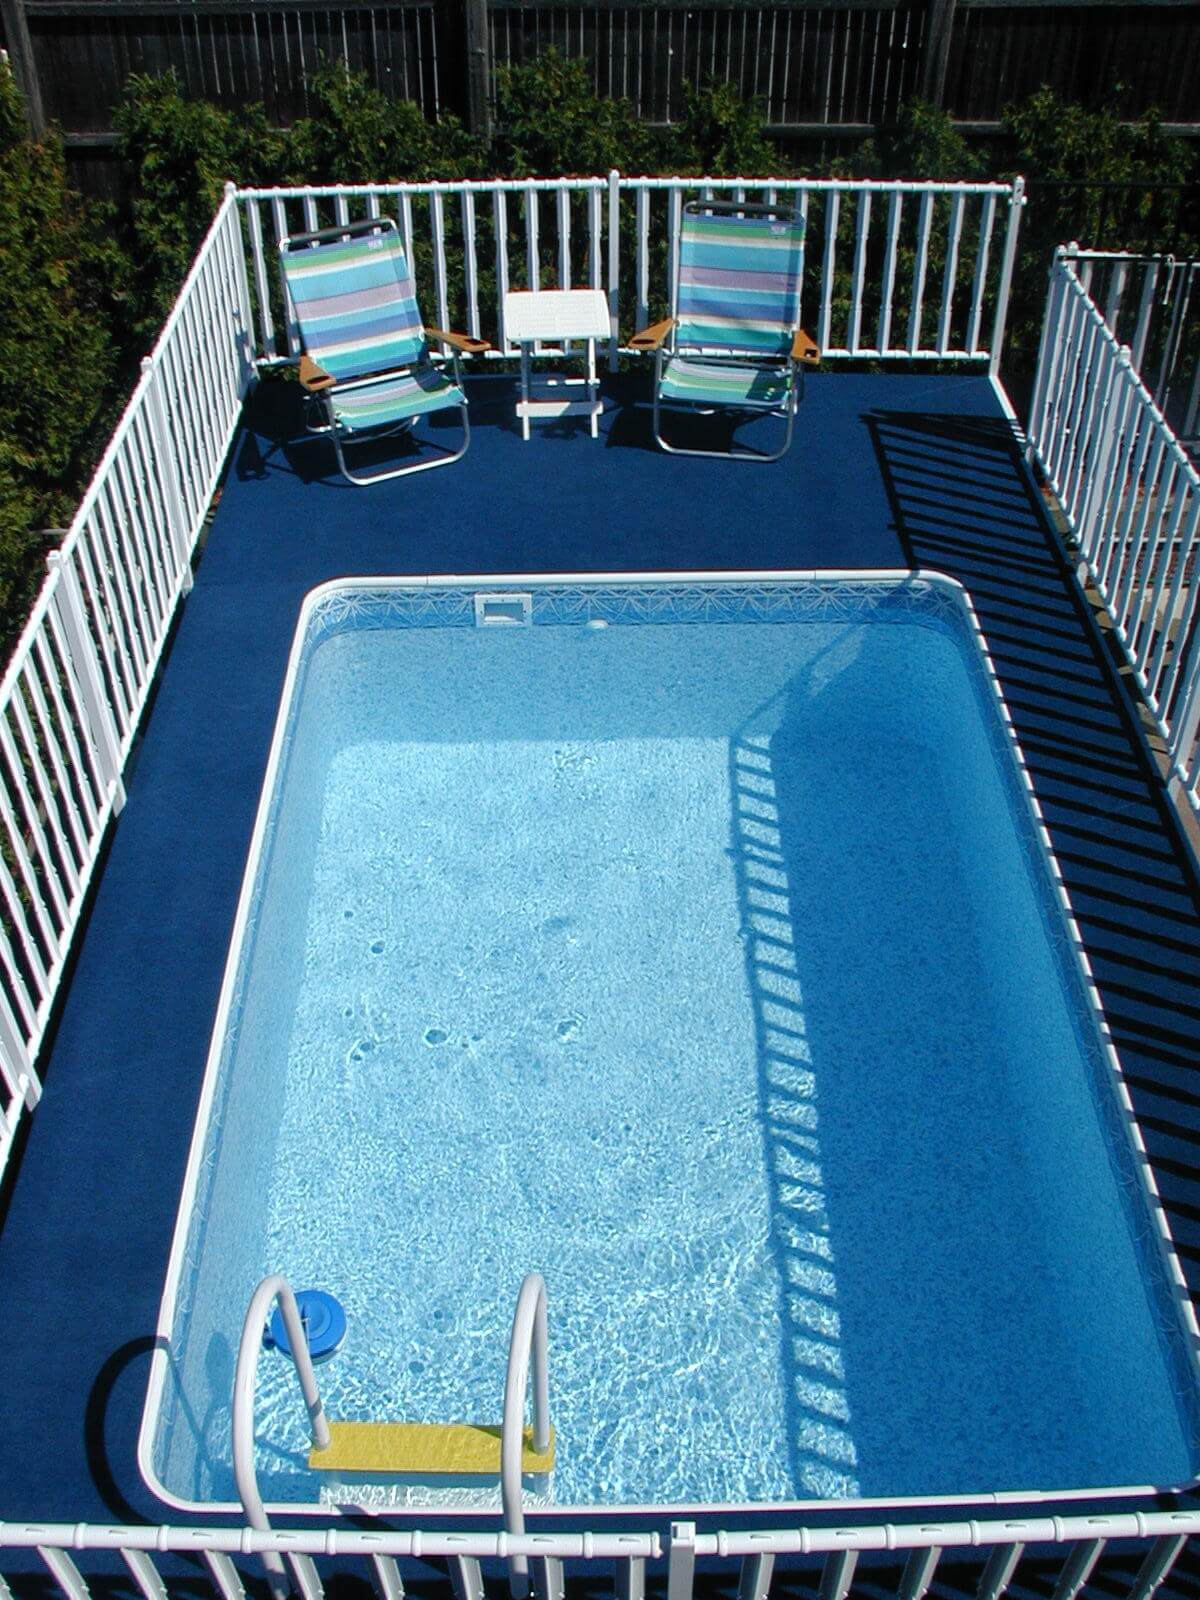 Admiral 39 s walk pool vs gibraltar kayak elite above ground pools for A rectangular swimming pool is 6 ft deep